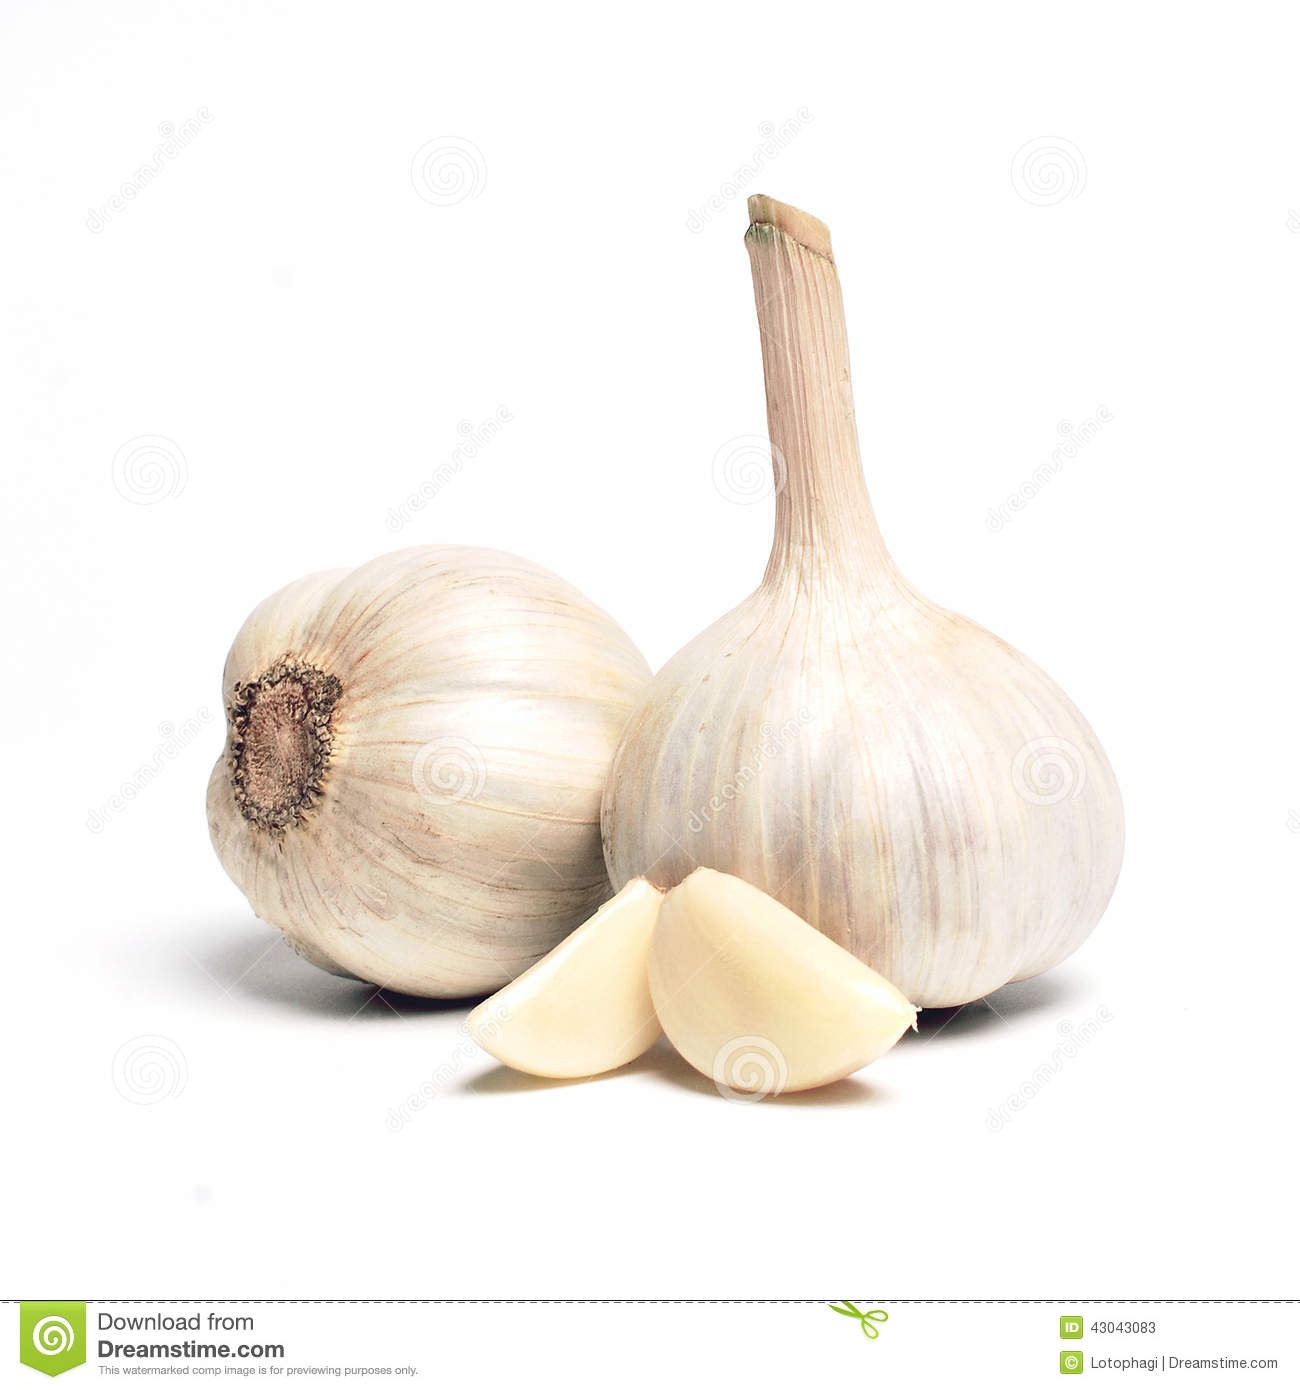 Download Garlic stock image. Image of clean, fresh, chinese, object - 43043083